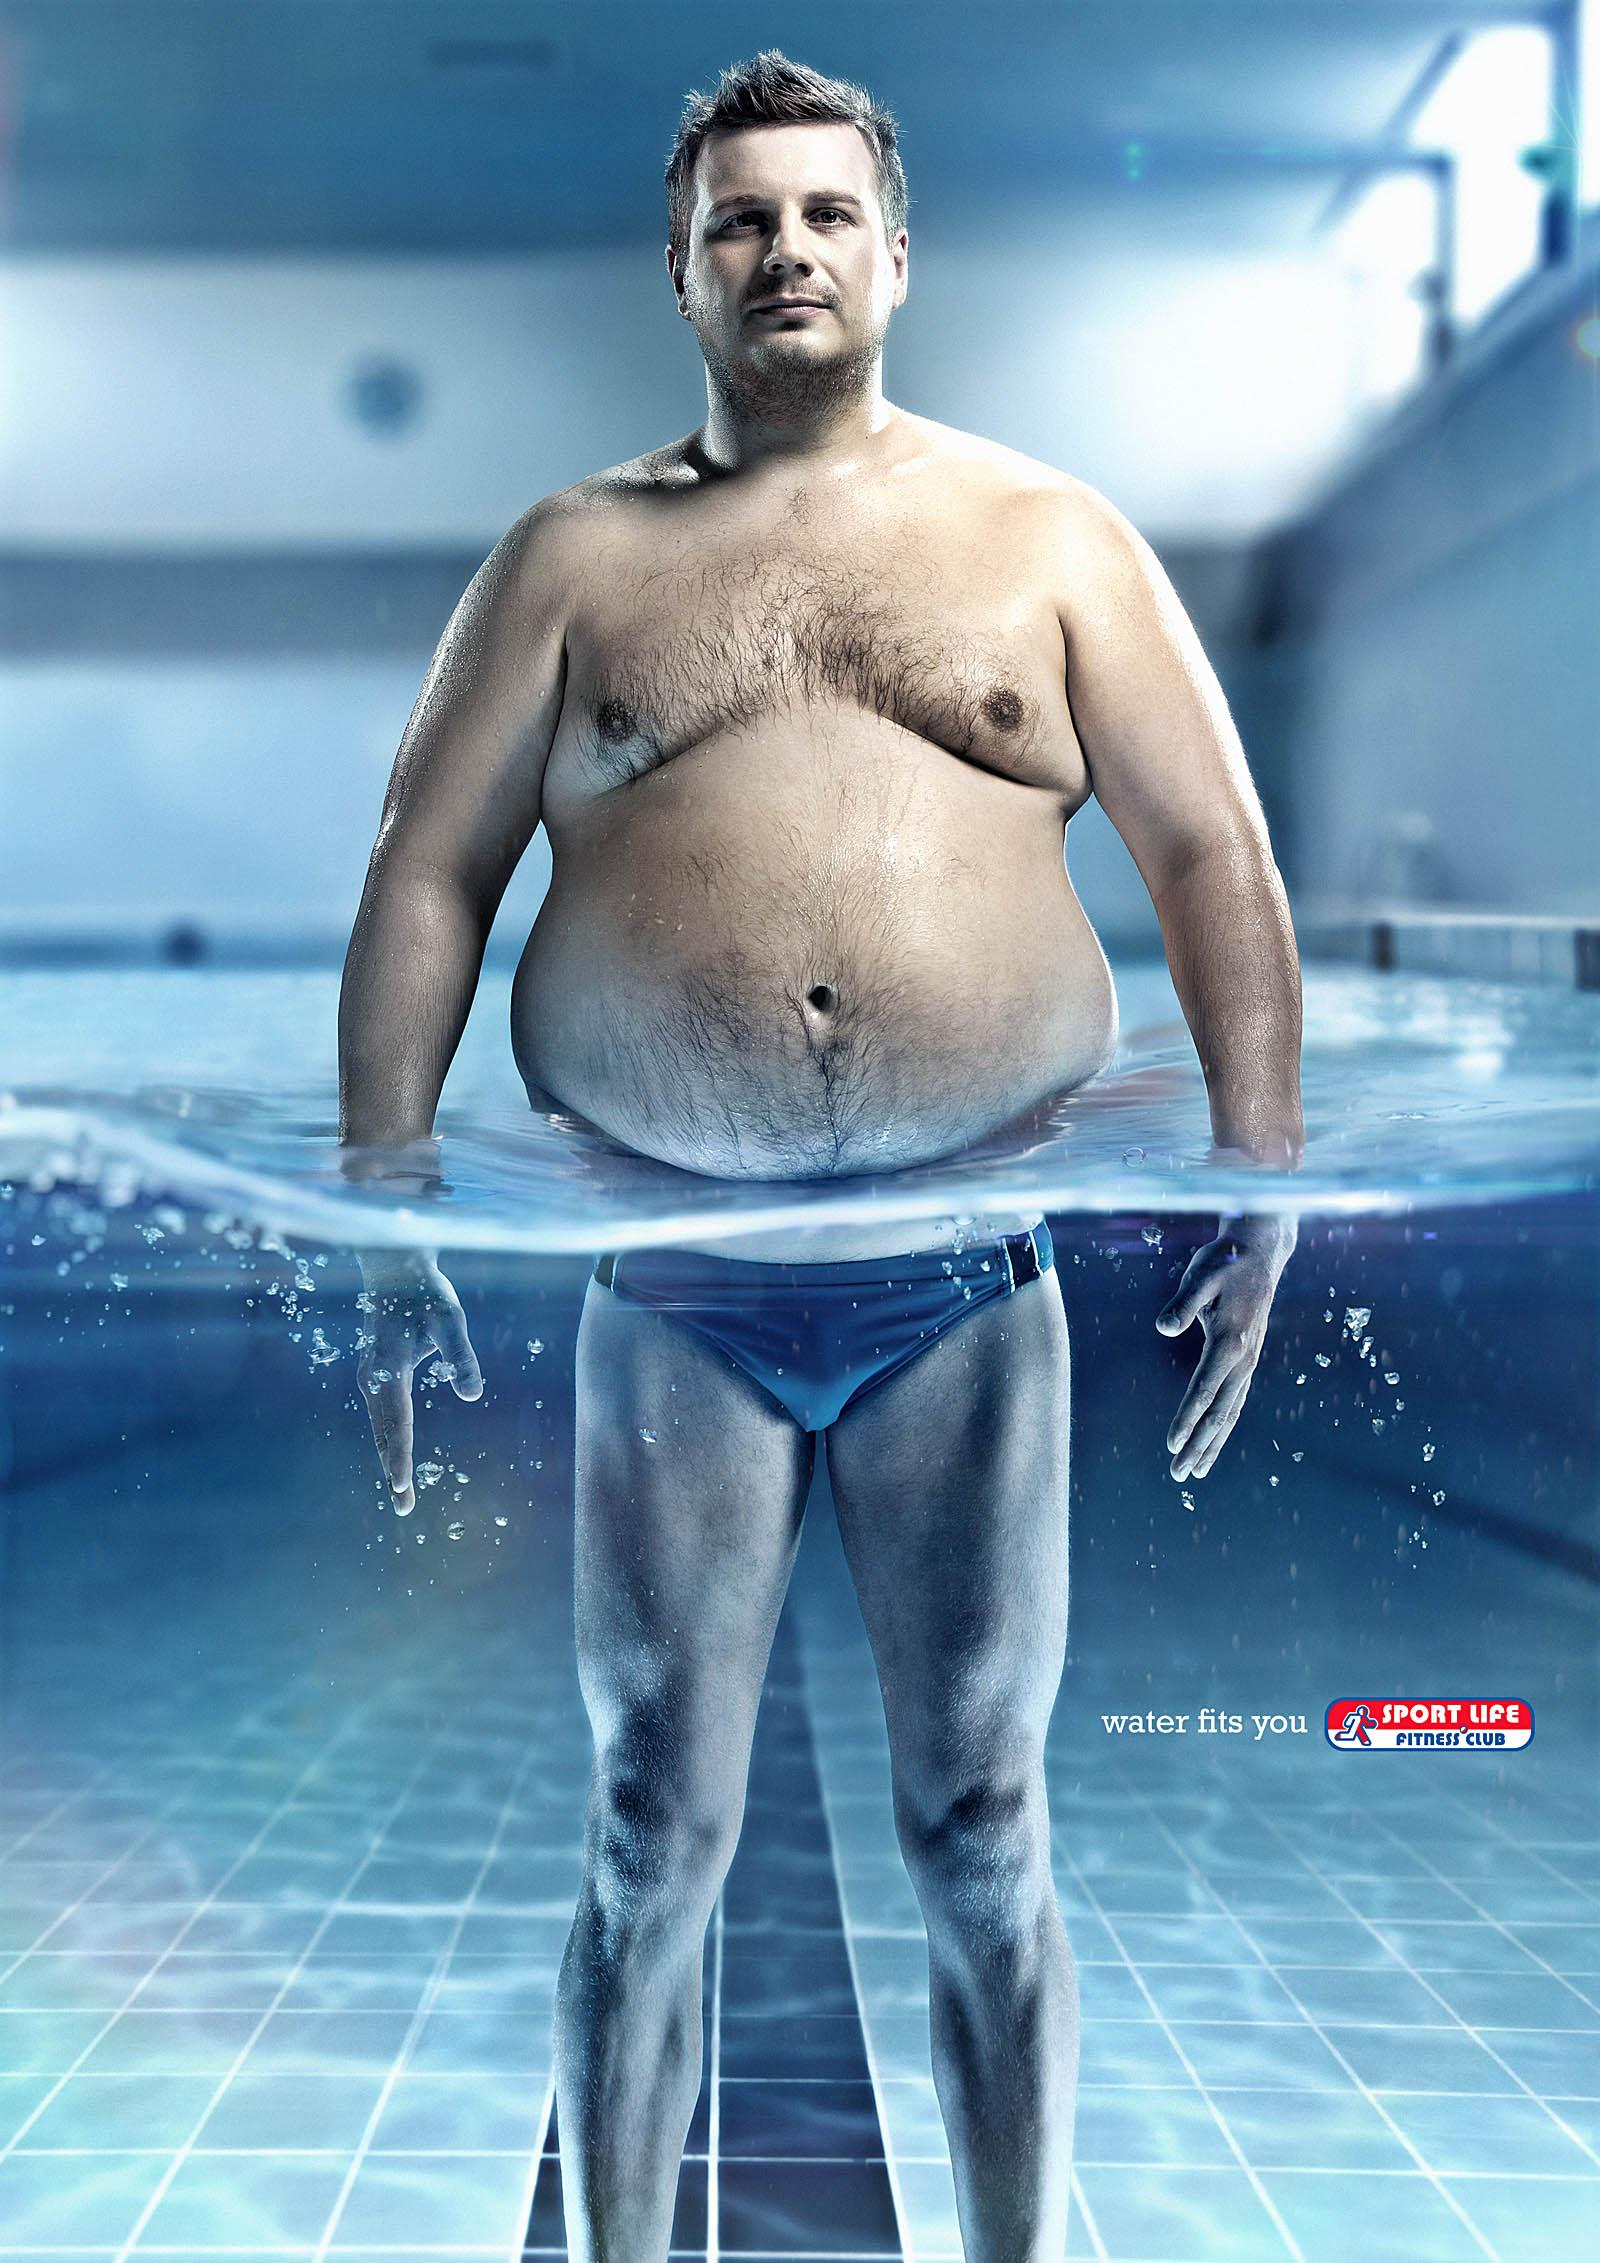 Sportlife Print Ad -  Water fits you, Guy